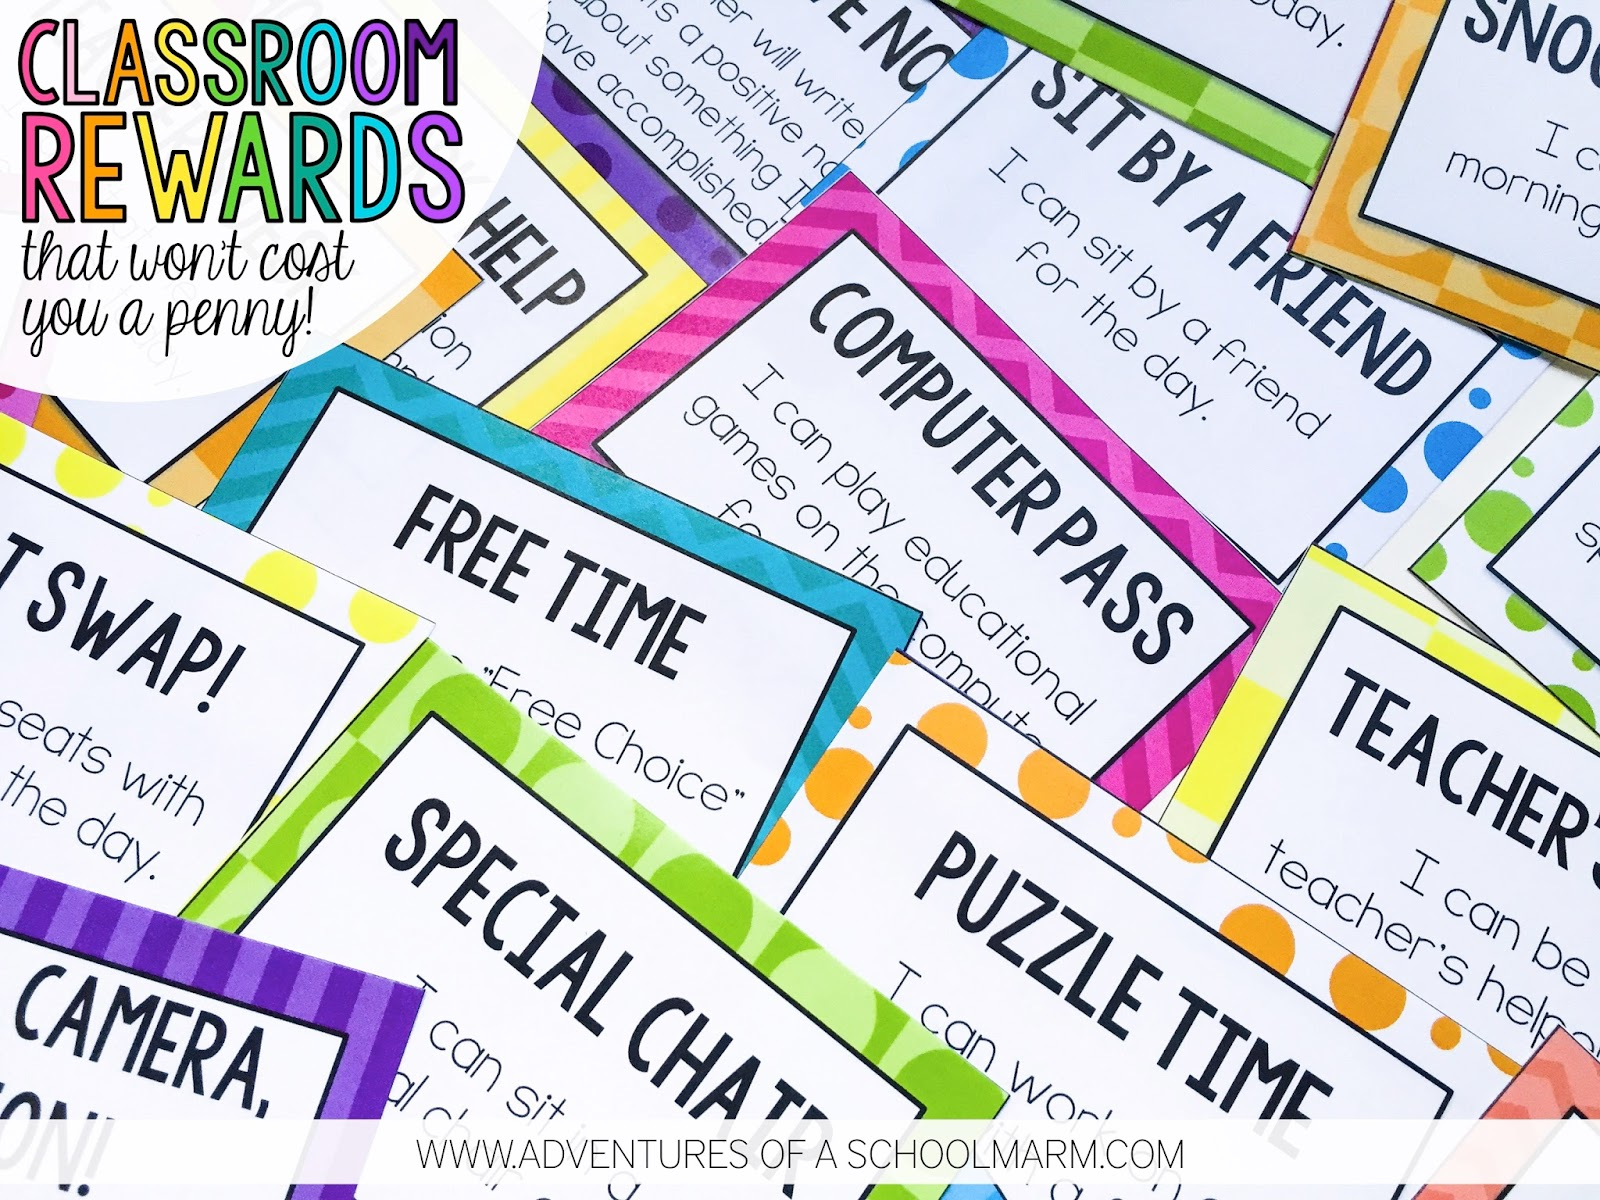 These EDITABLE reward coupons revolutionized my classroom management system! The students love the privileges they can earn, and I love that it doesn't cost me anything. An elementary classroom MUST-HAVE!